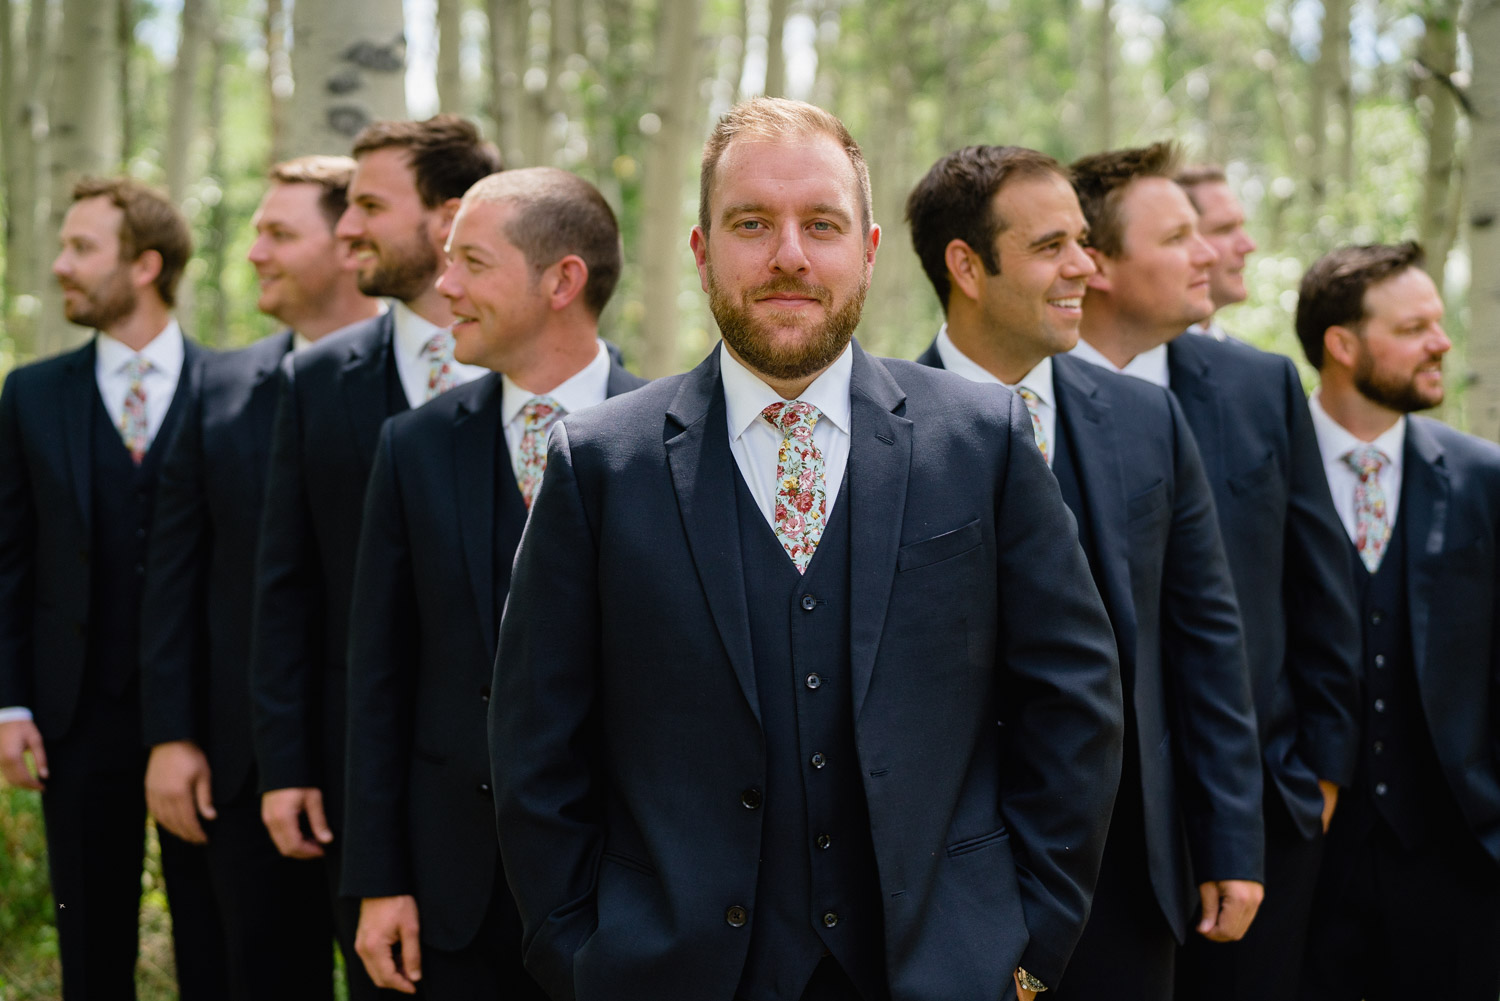 groom and best men wedding party outside with trees